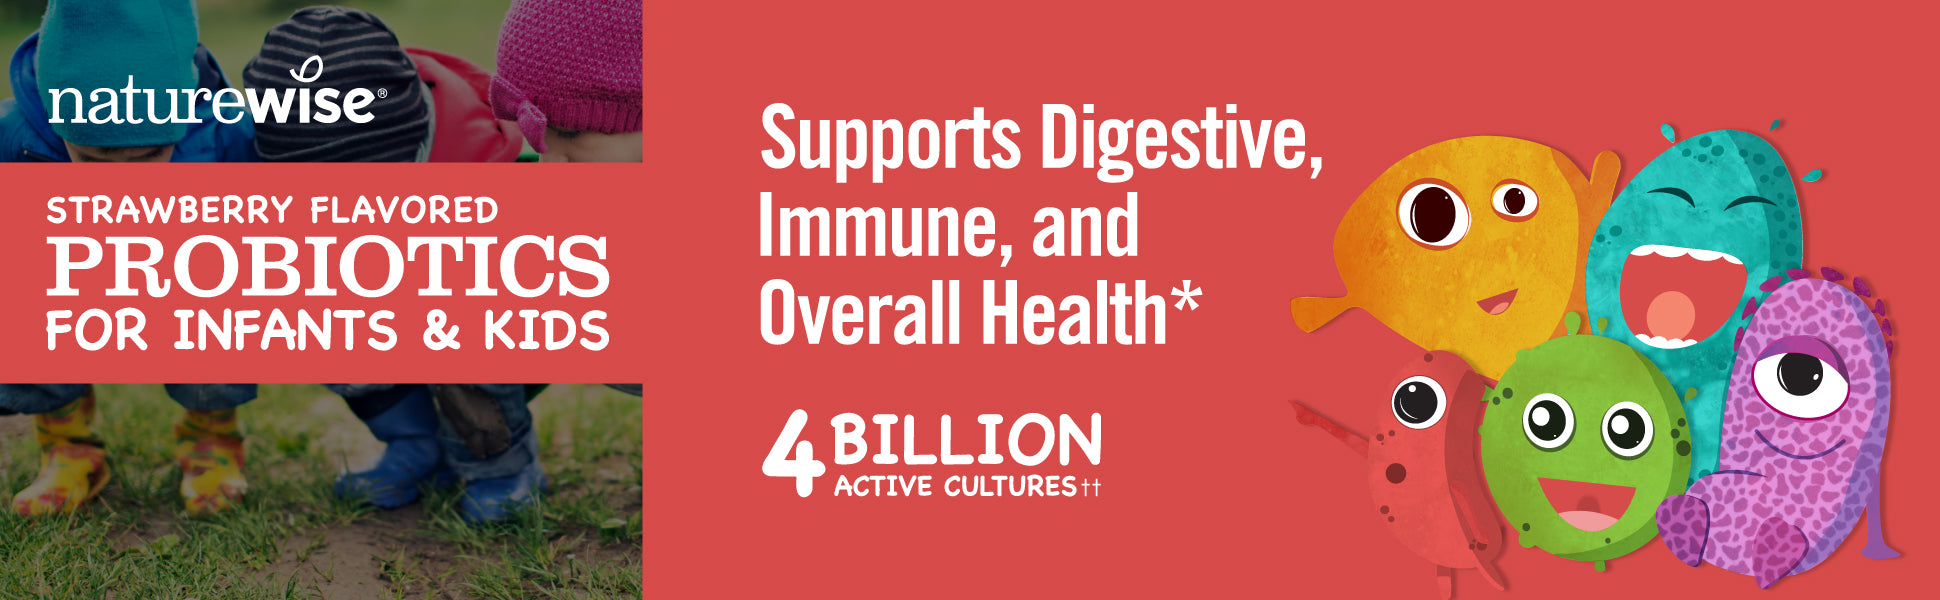 Supports Digestive, Immune, and Overall Health